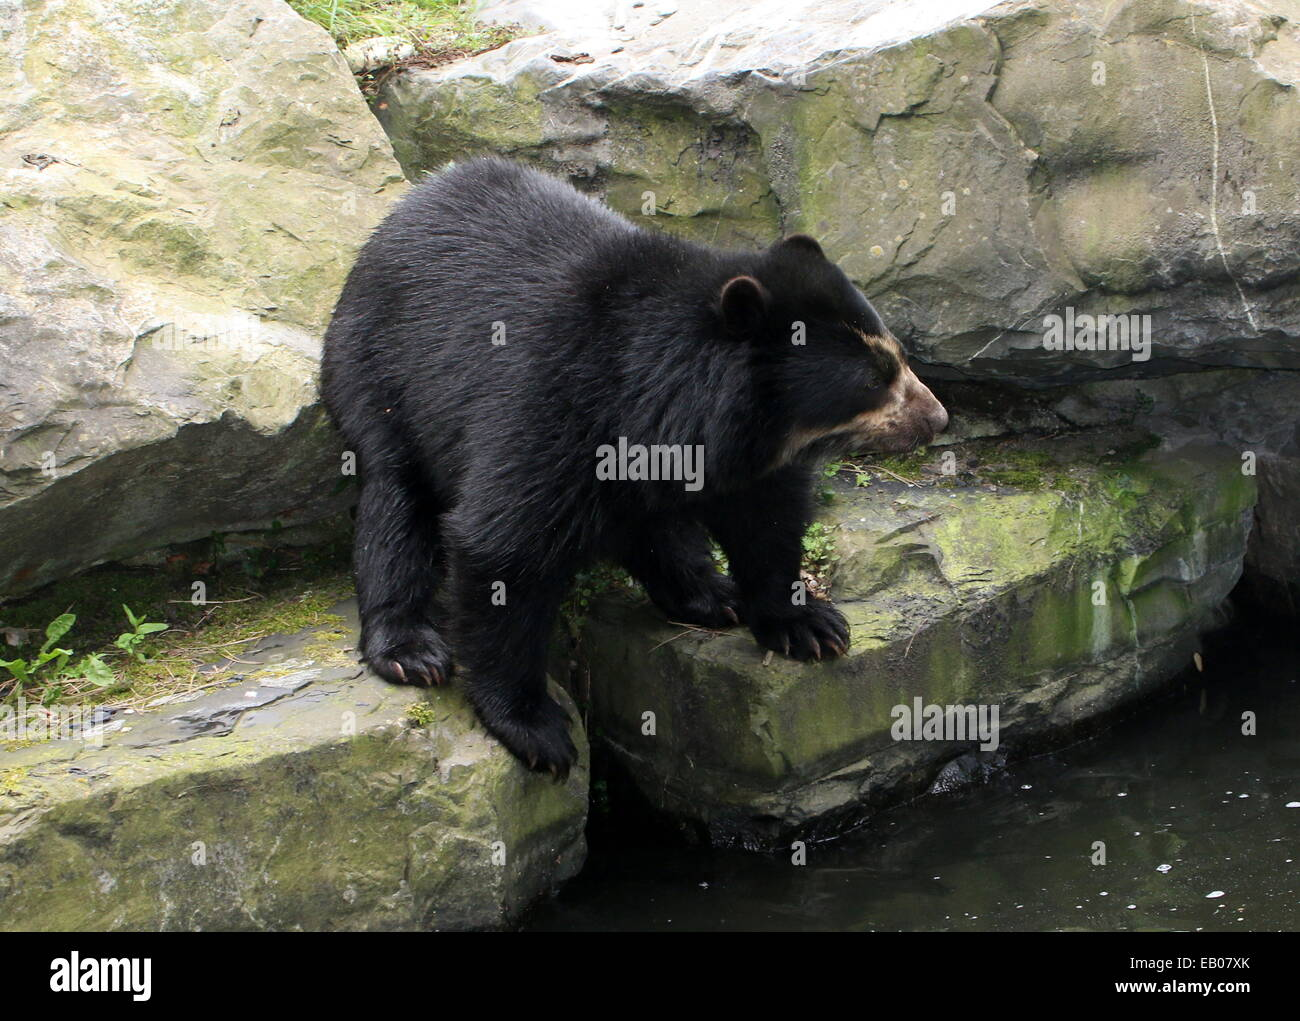 Spectacled or  Andean bear (Tremarctos ornatus) close-up near the water's edge Stock Photo